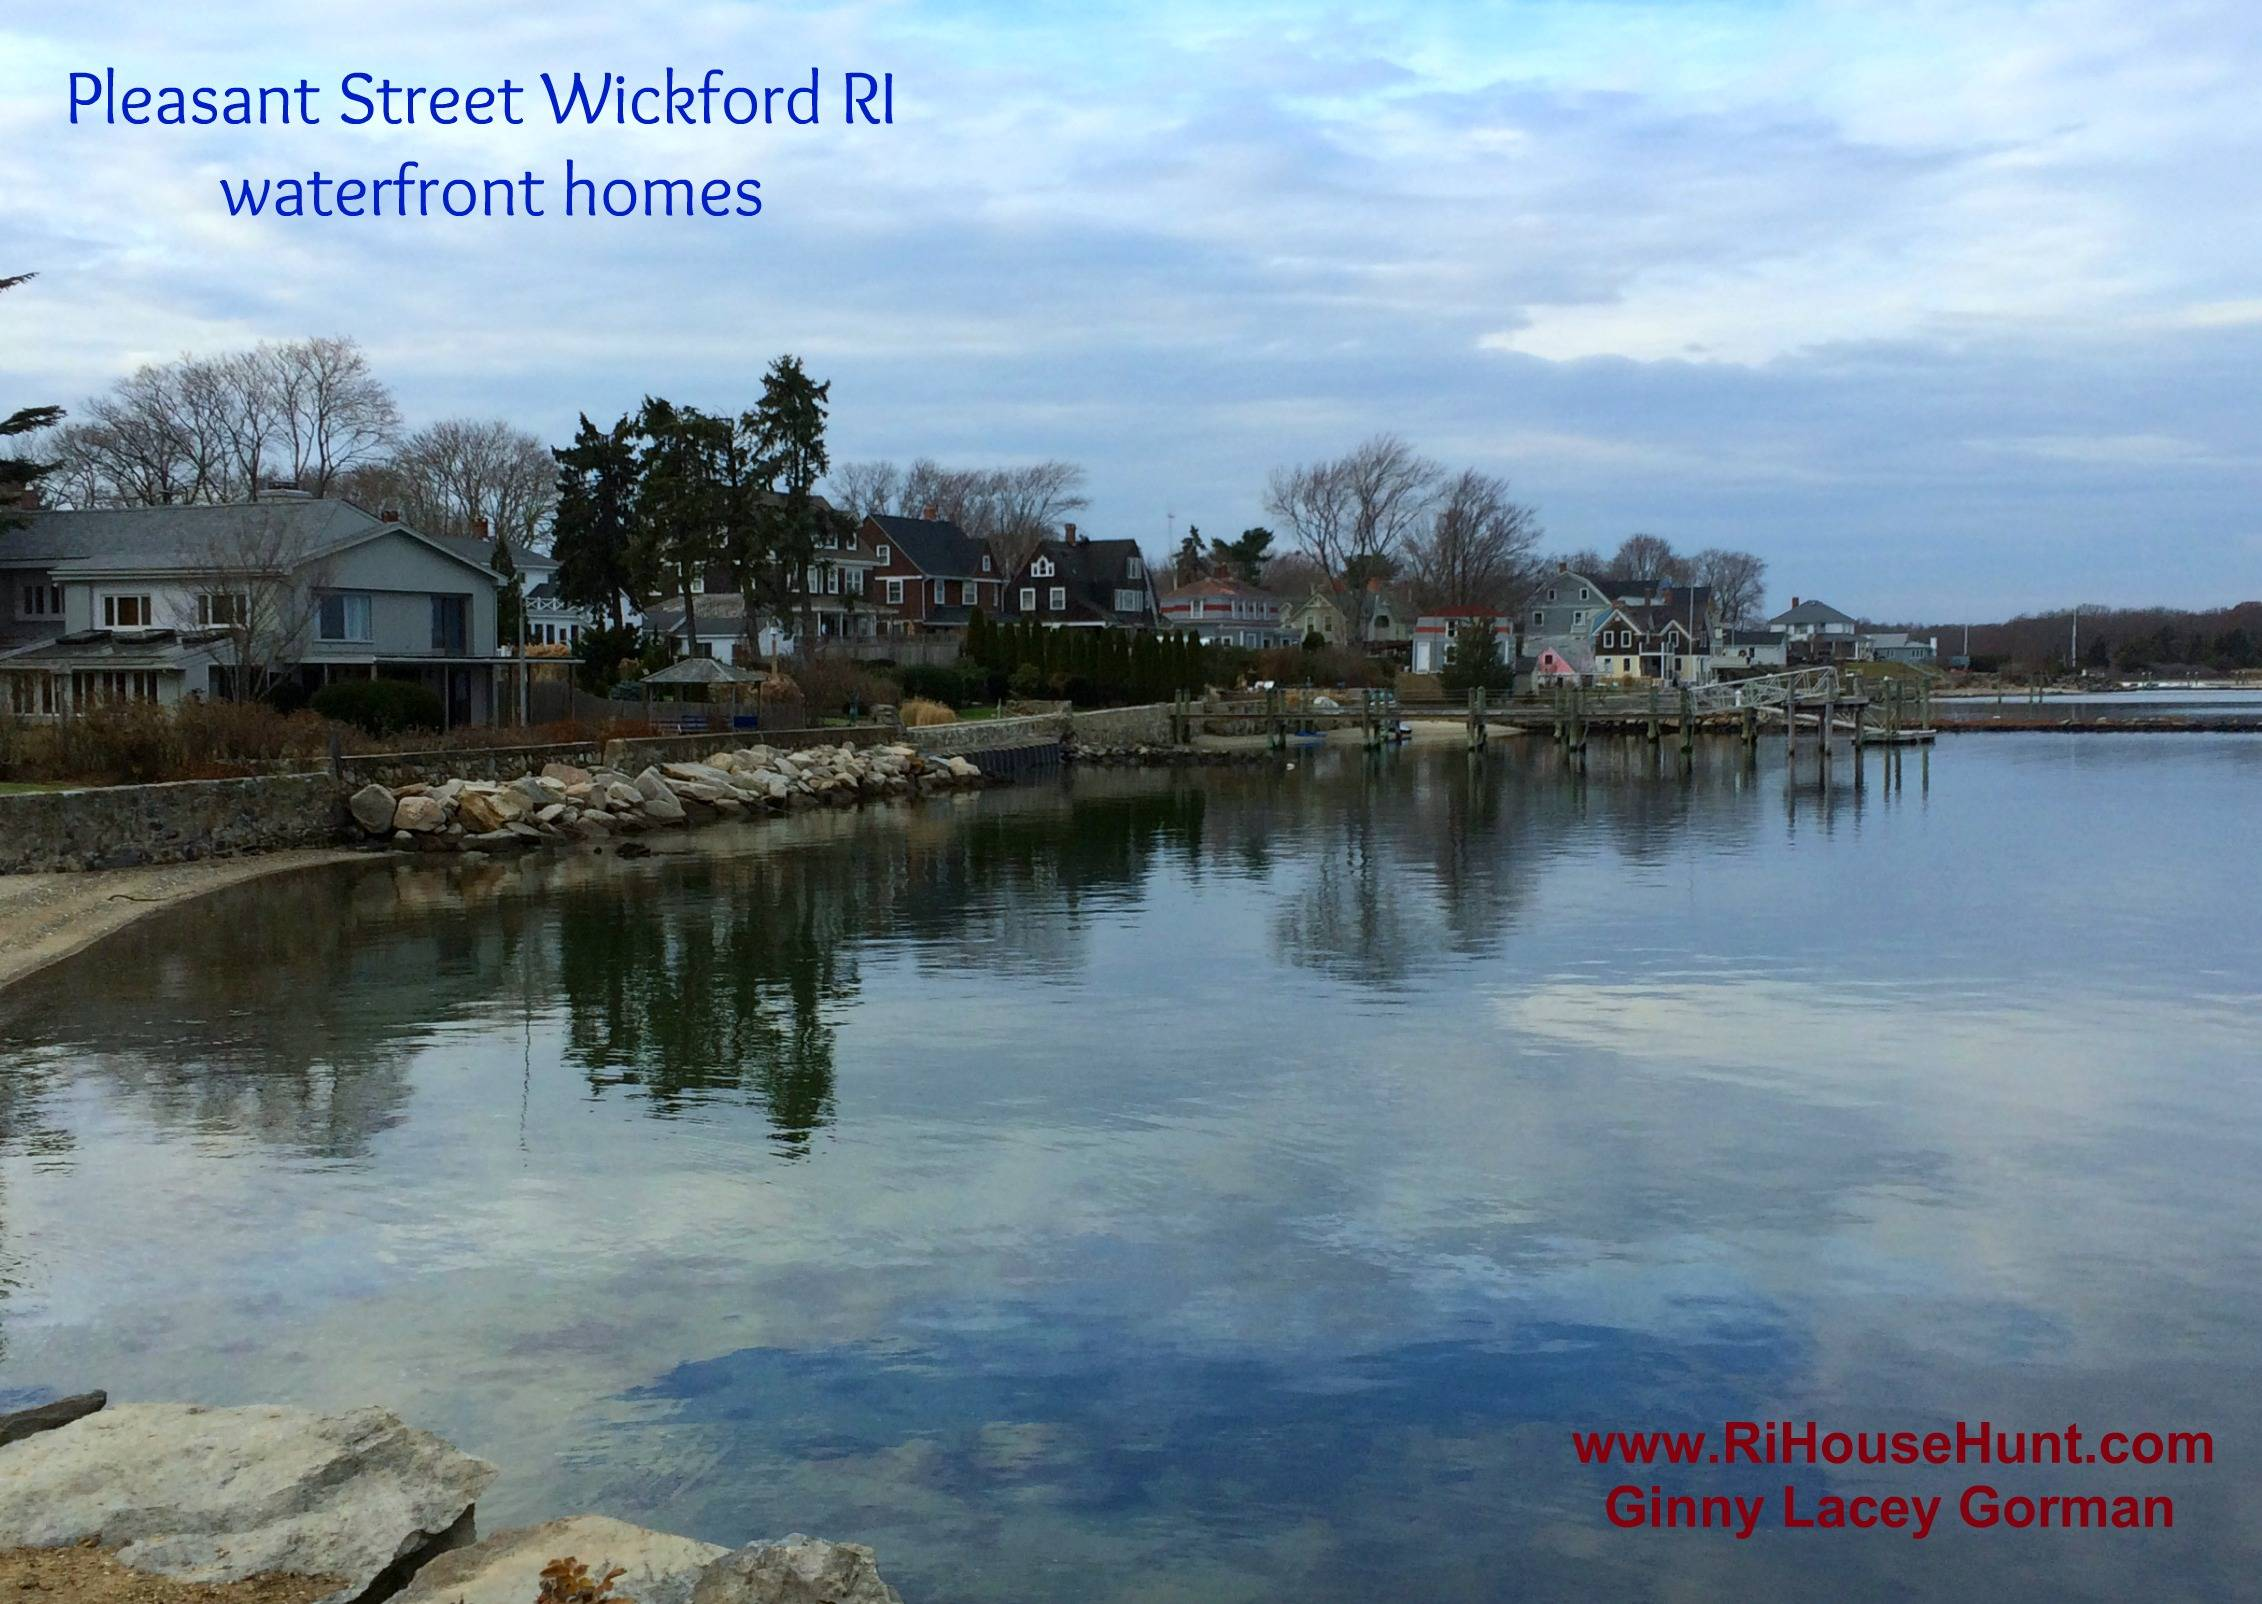 Wickford RI at the water in real estate